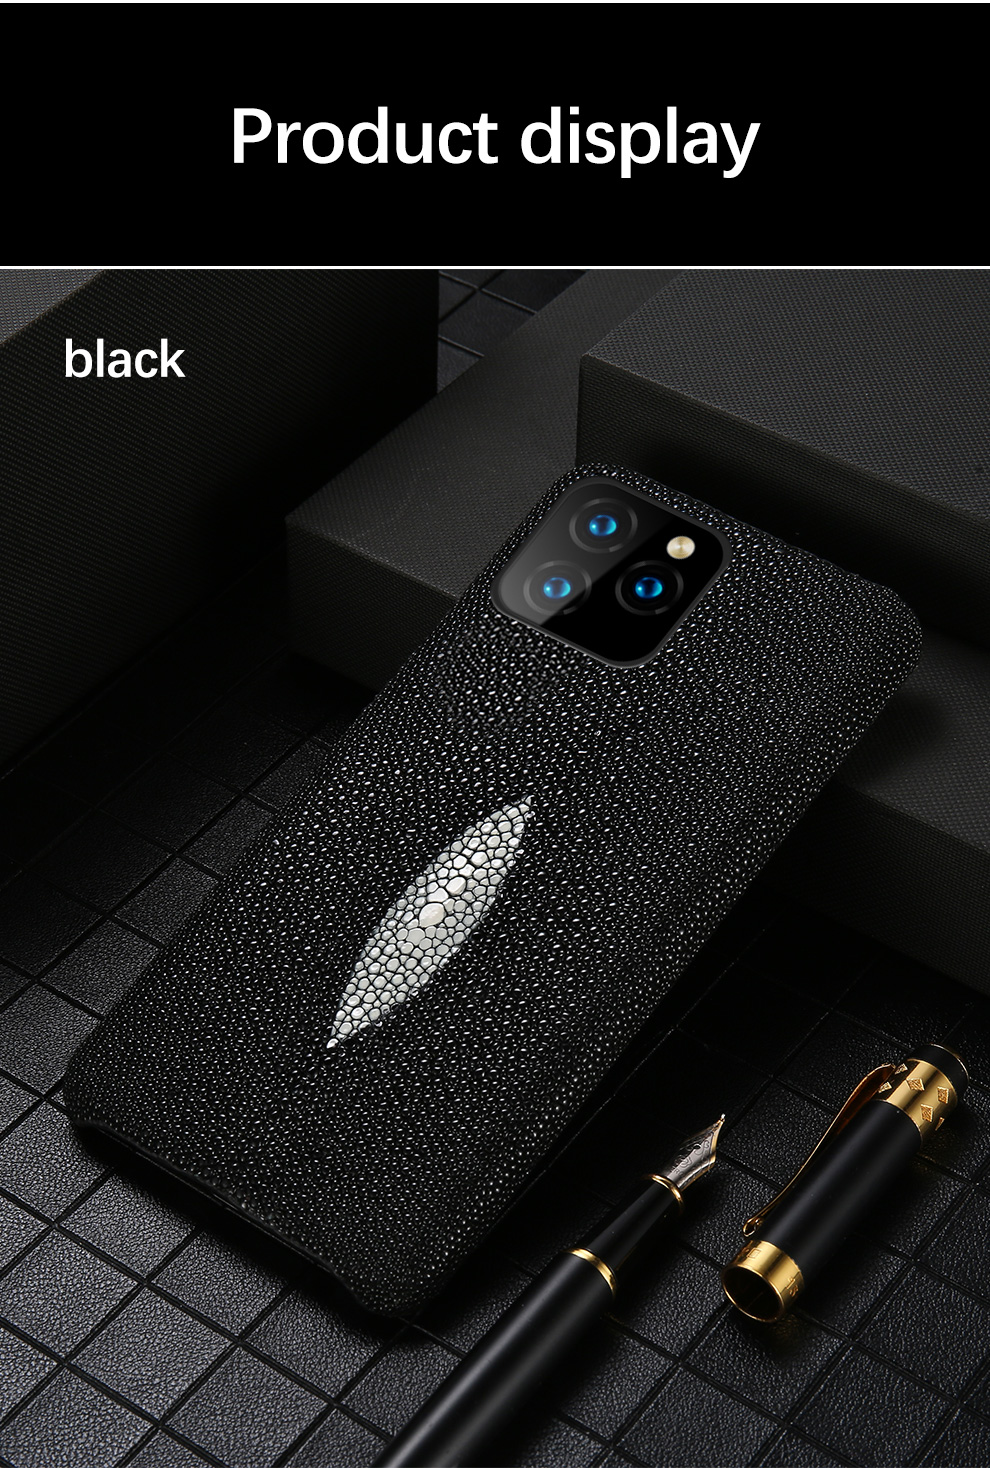 Genuine Leather case For Iphone 11 pro max Original Stingray leather back cover For iphone 11 case xr xs max 7 8 coque fundas